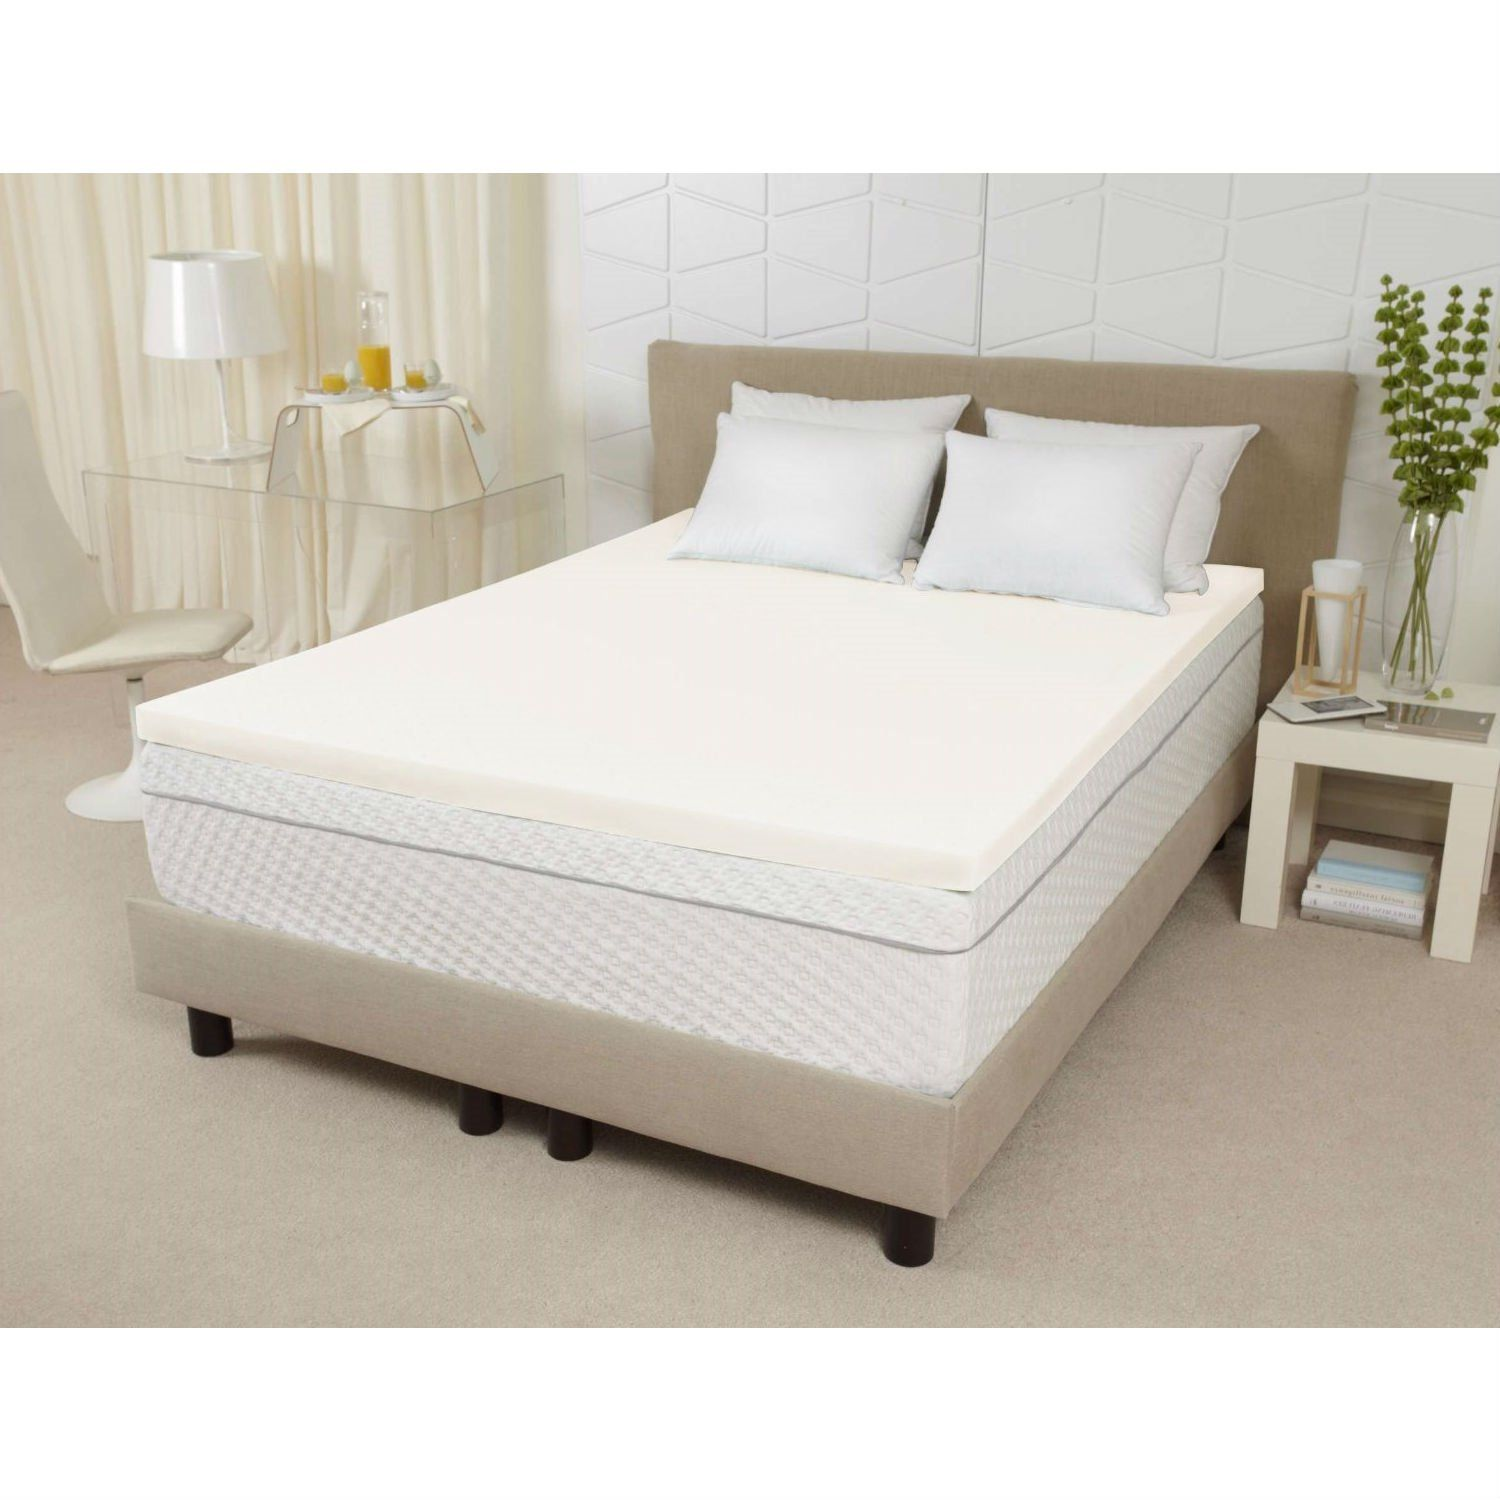 protector fill quilted double size triple itm king single topper bed mattress